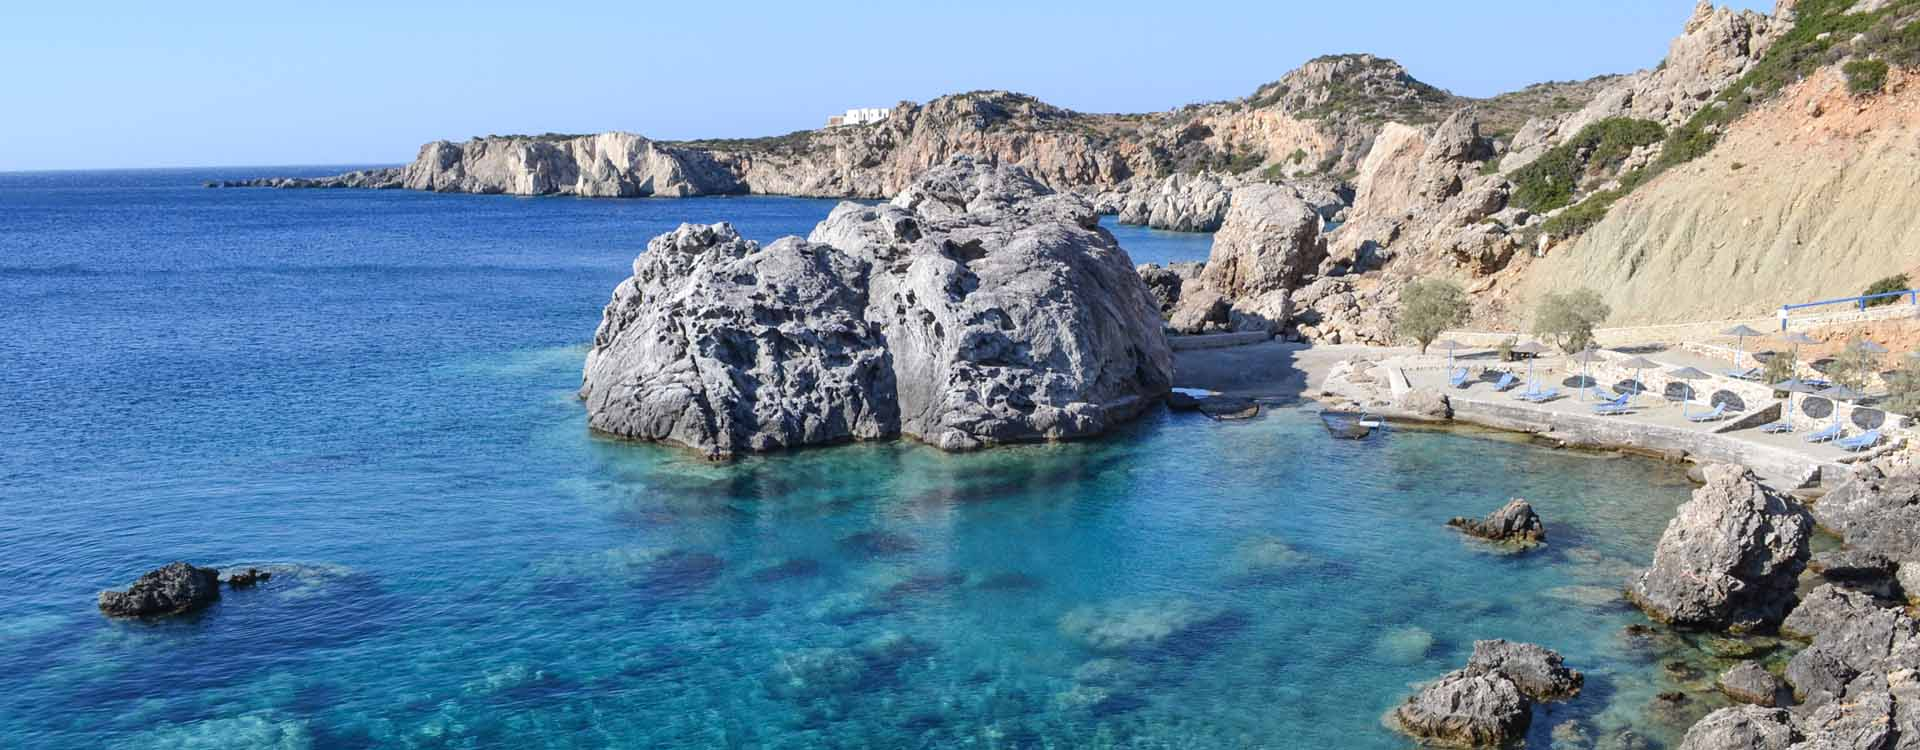 Our spectacular location, Castelia beach in Amoopi Karpathos island